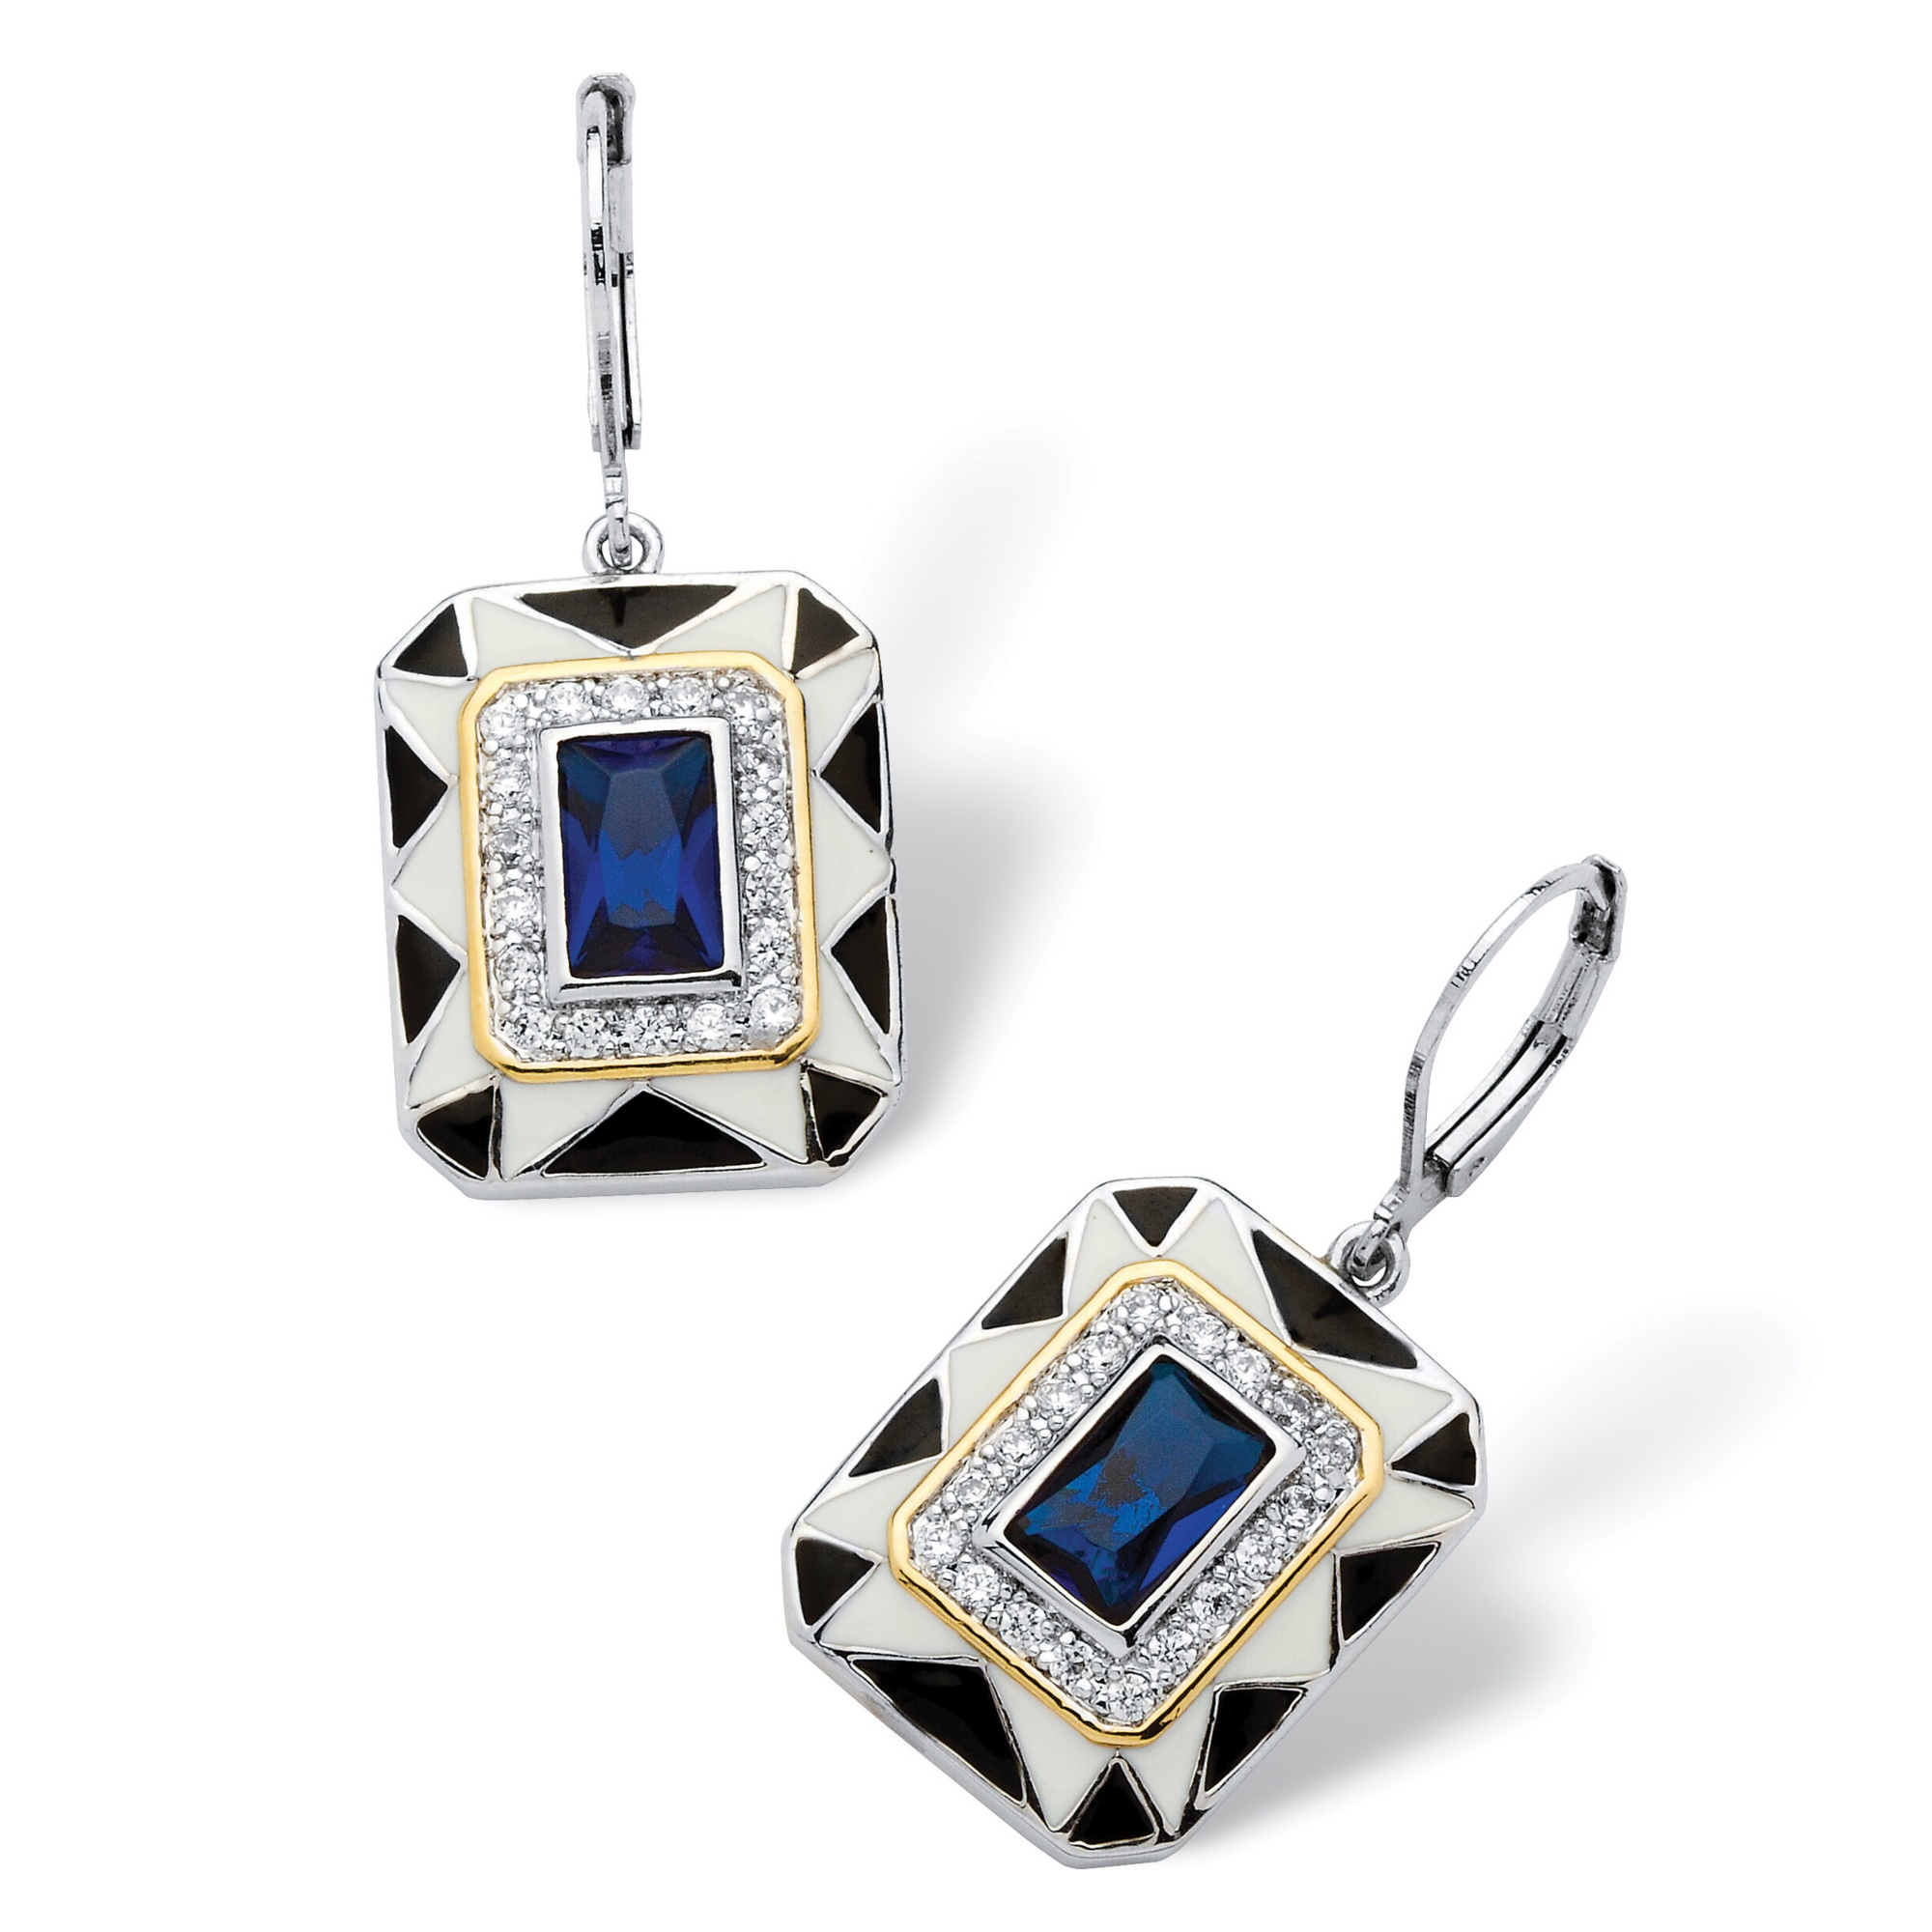 .76 TCW Emerald-Cut Blue Crystal Art Deco Style Earrings in Silvertone